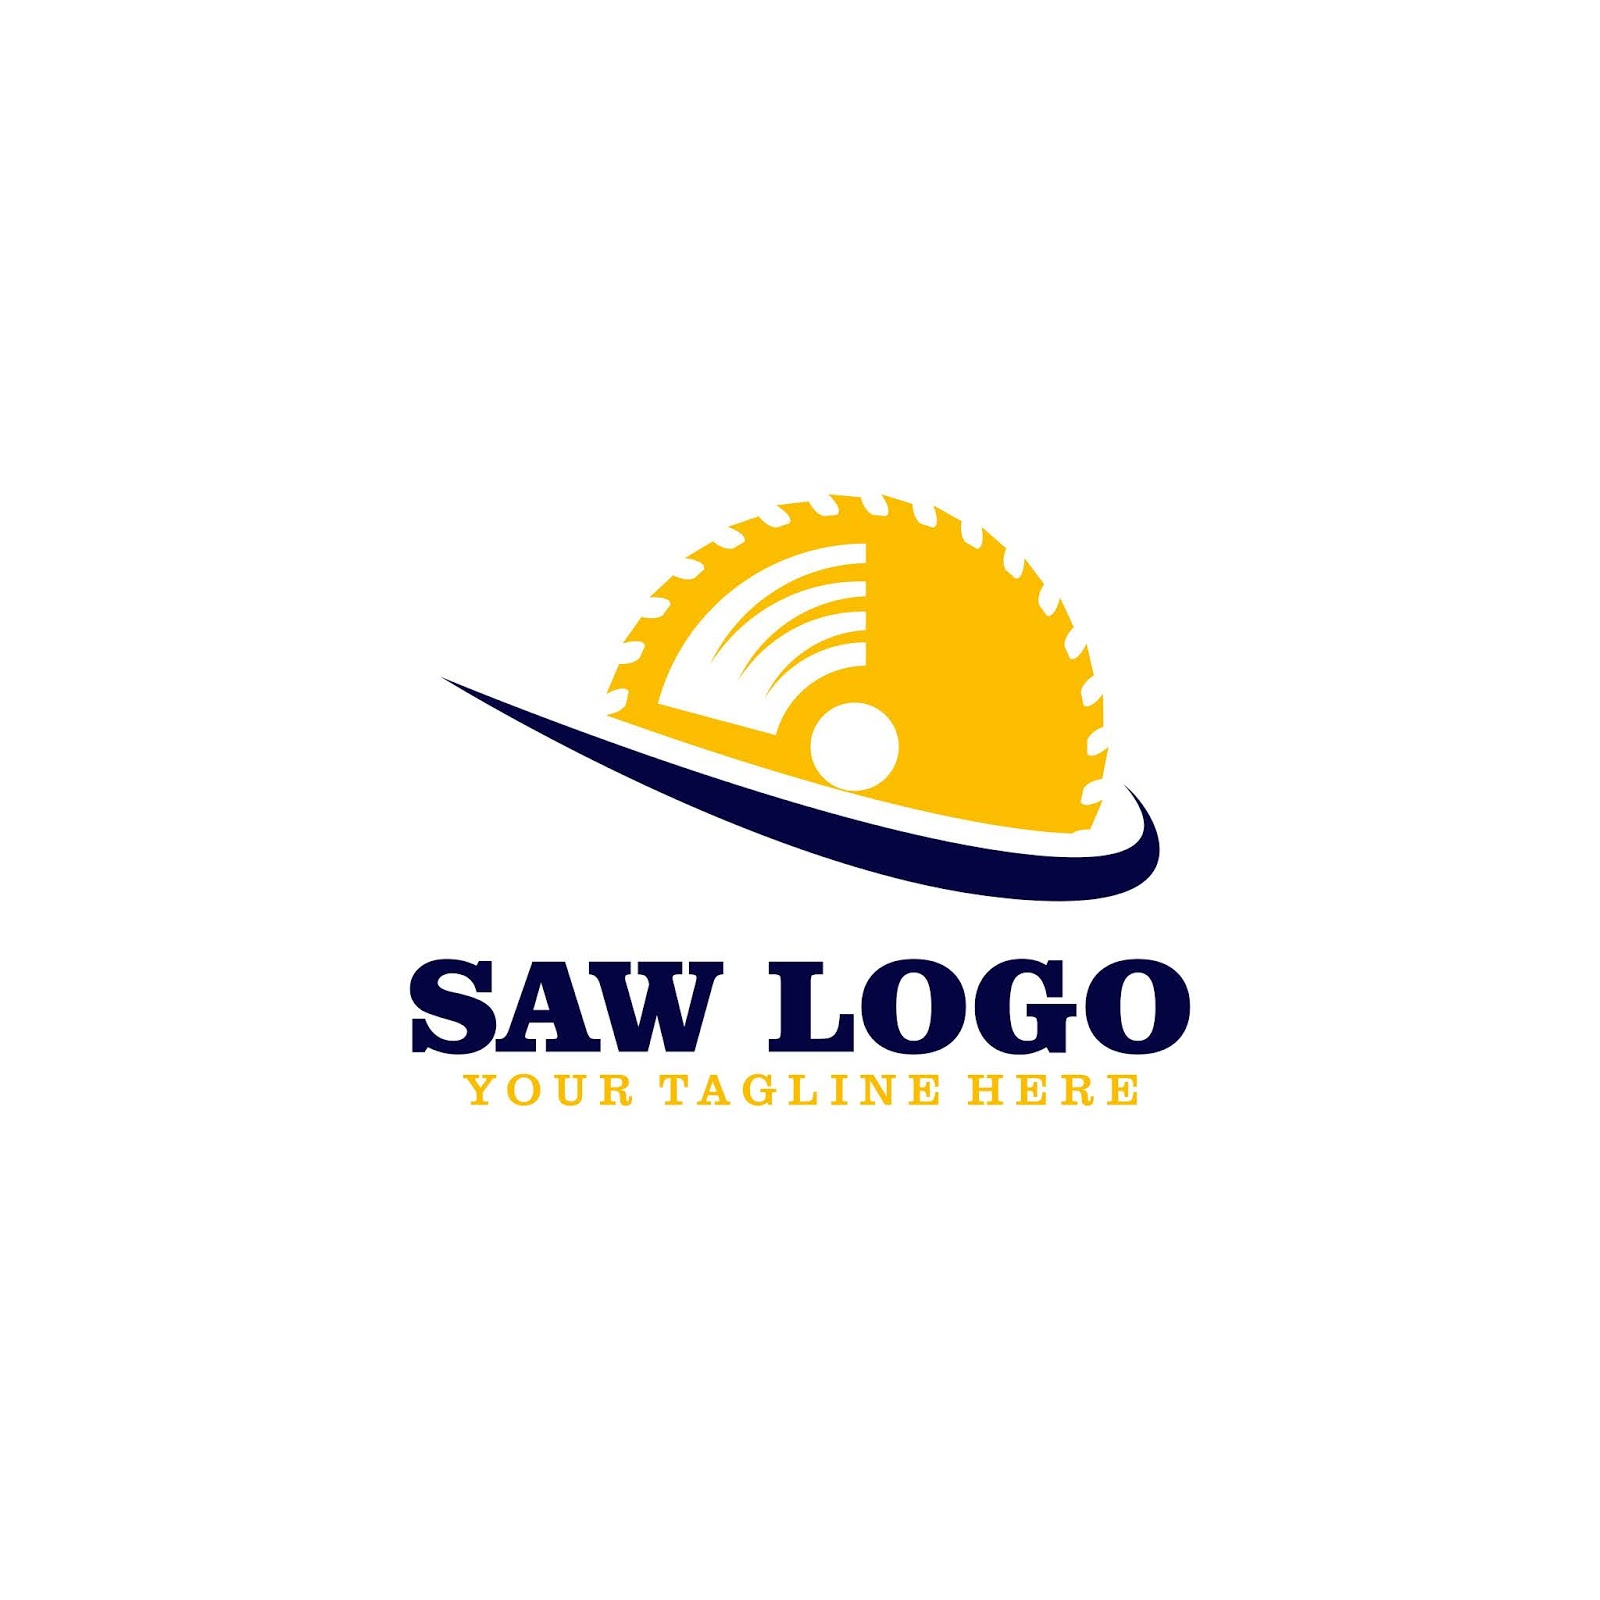 Saw Logo Free Download Vector CDR, AI, EPS and PNG Formats